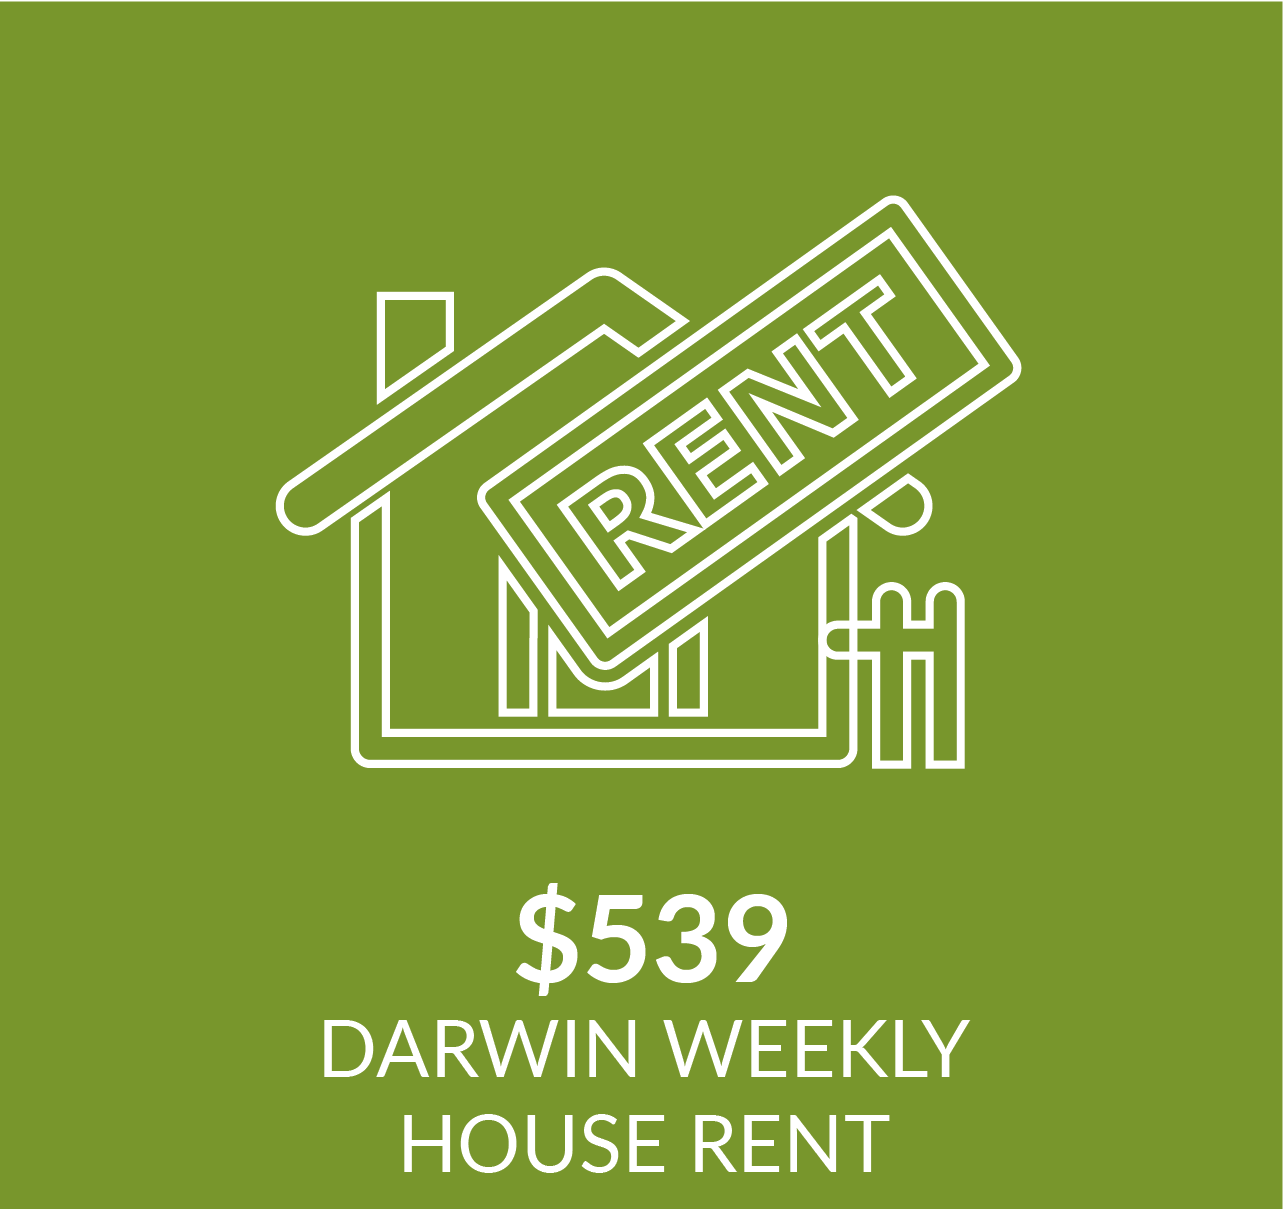 Infographic showing weekly house rent